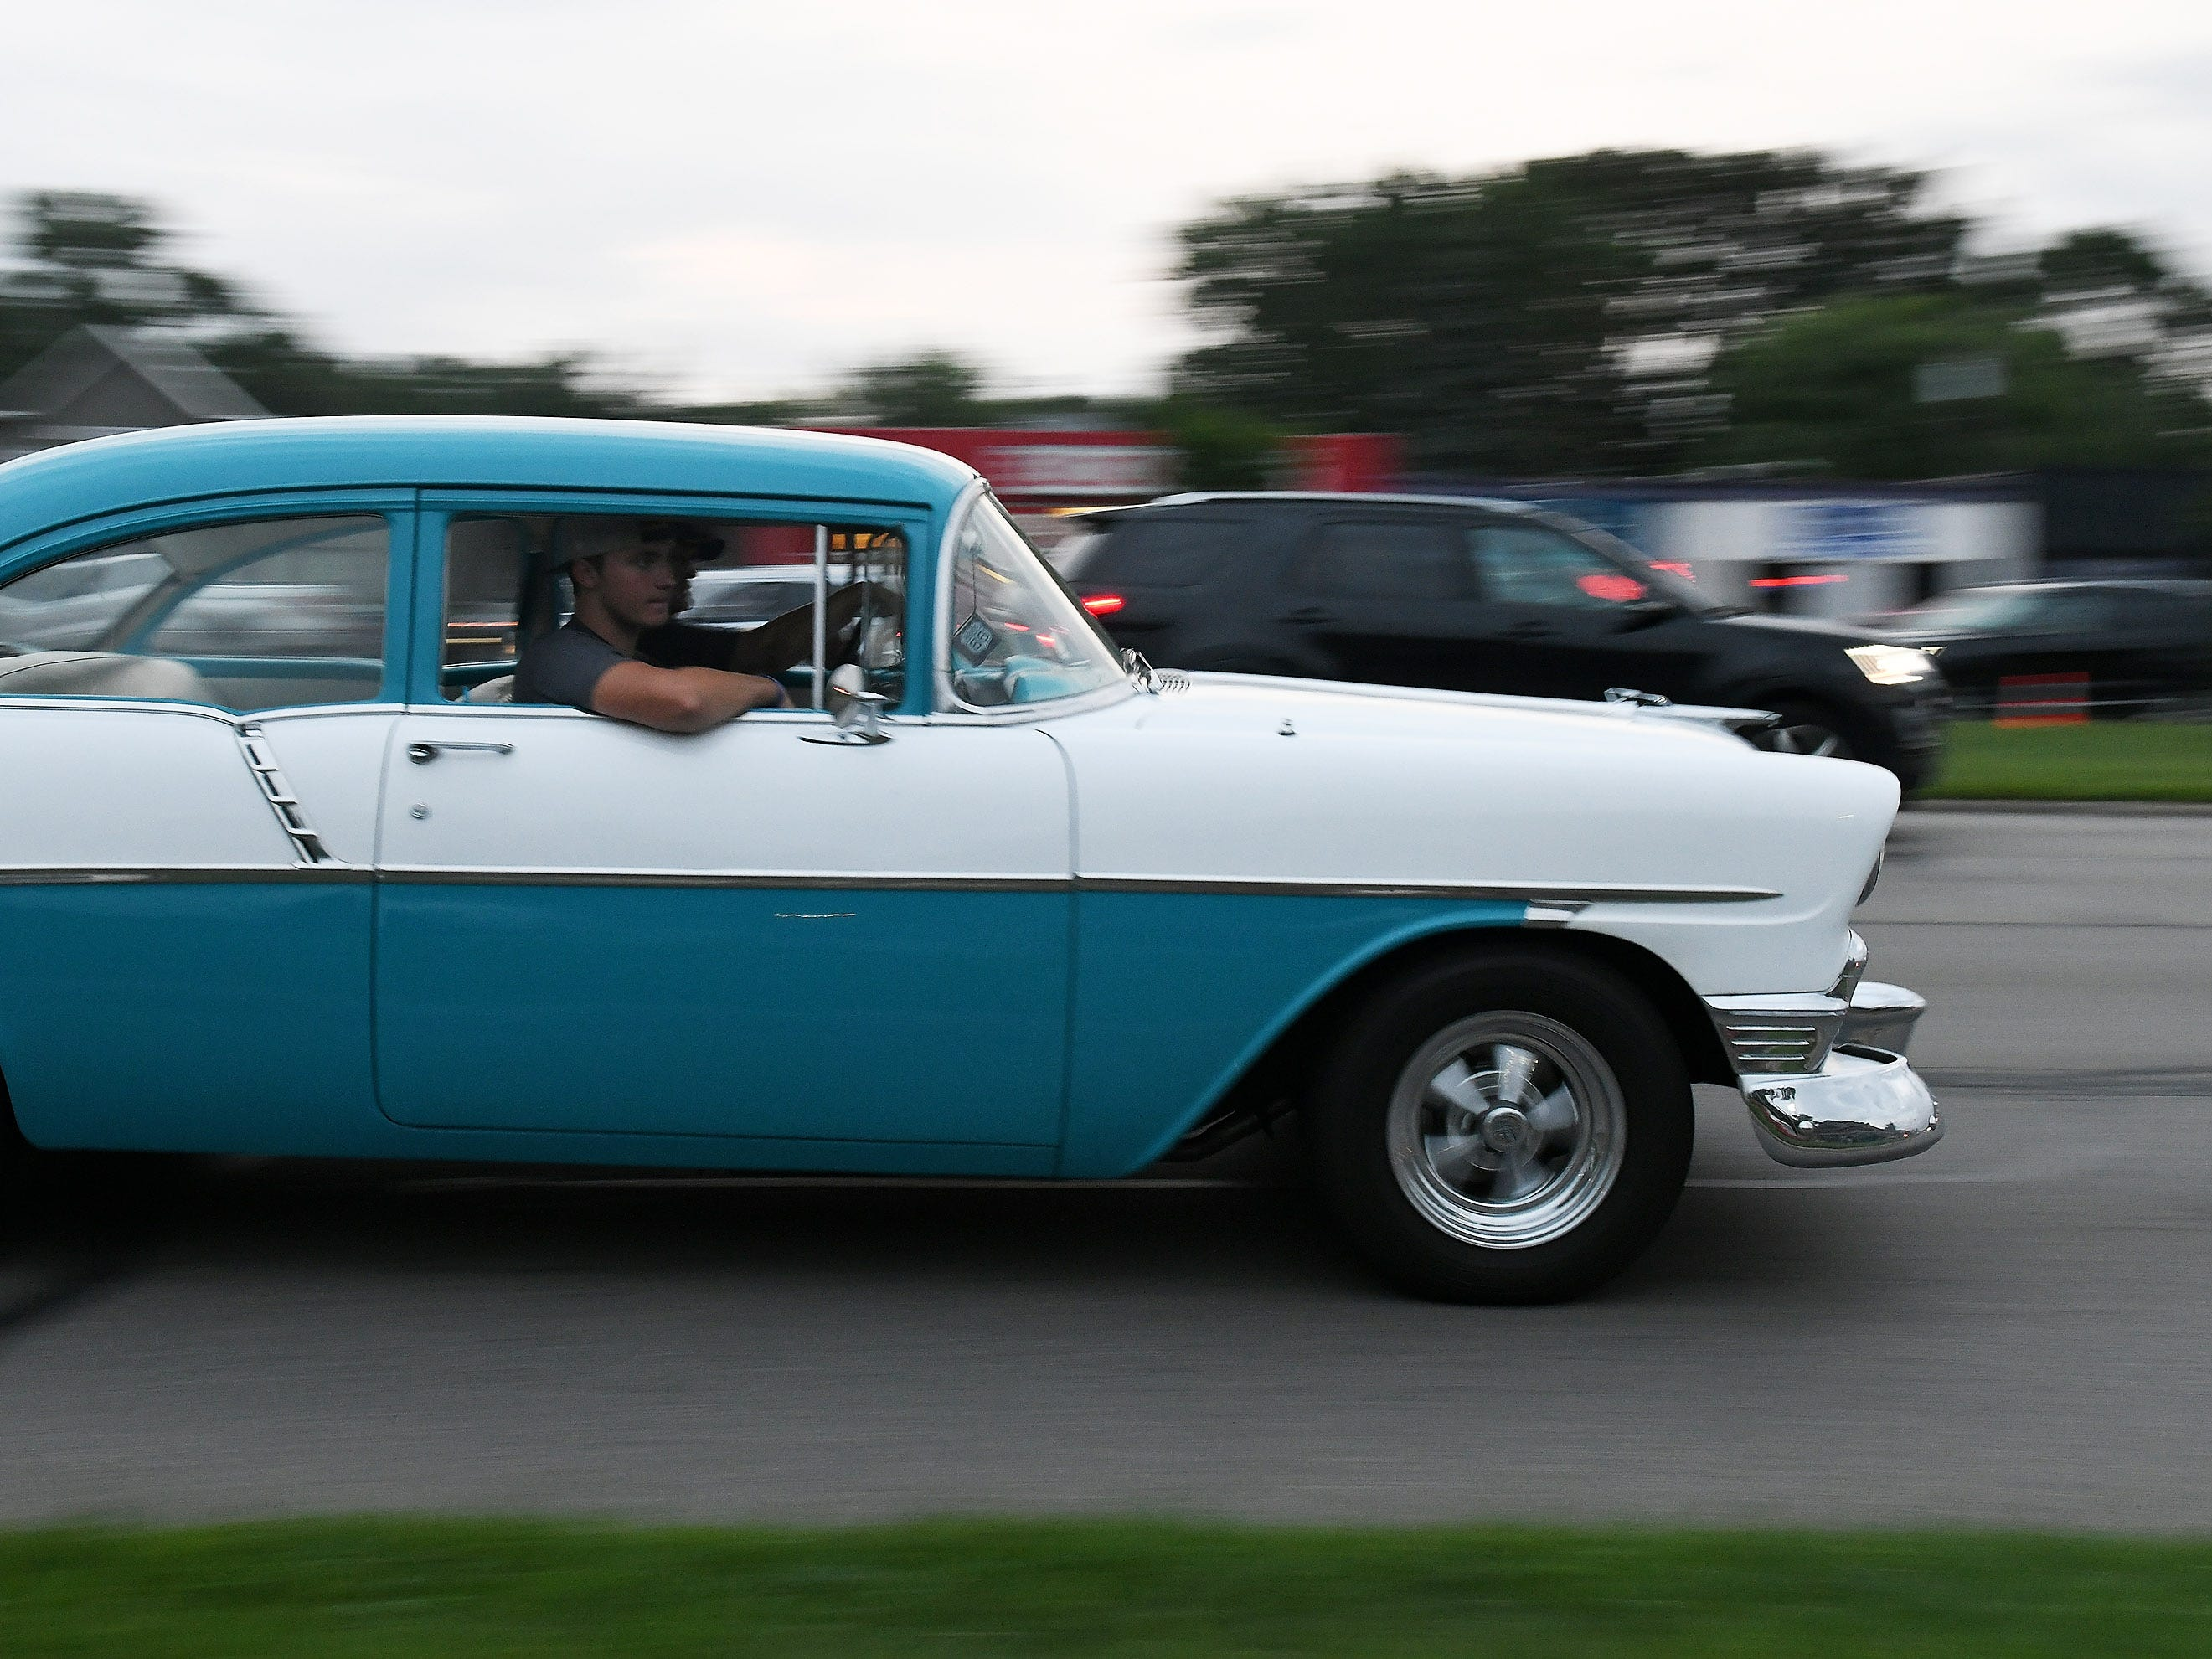 A classic car cruising on Woodward Avenue.